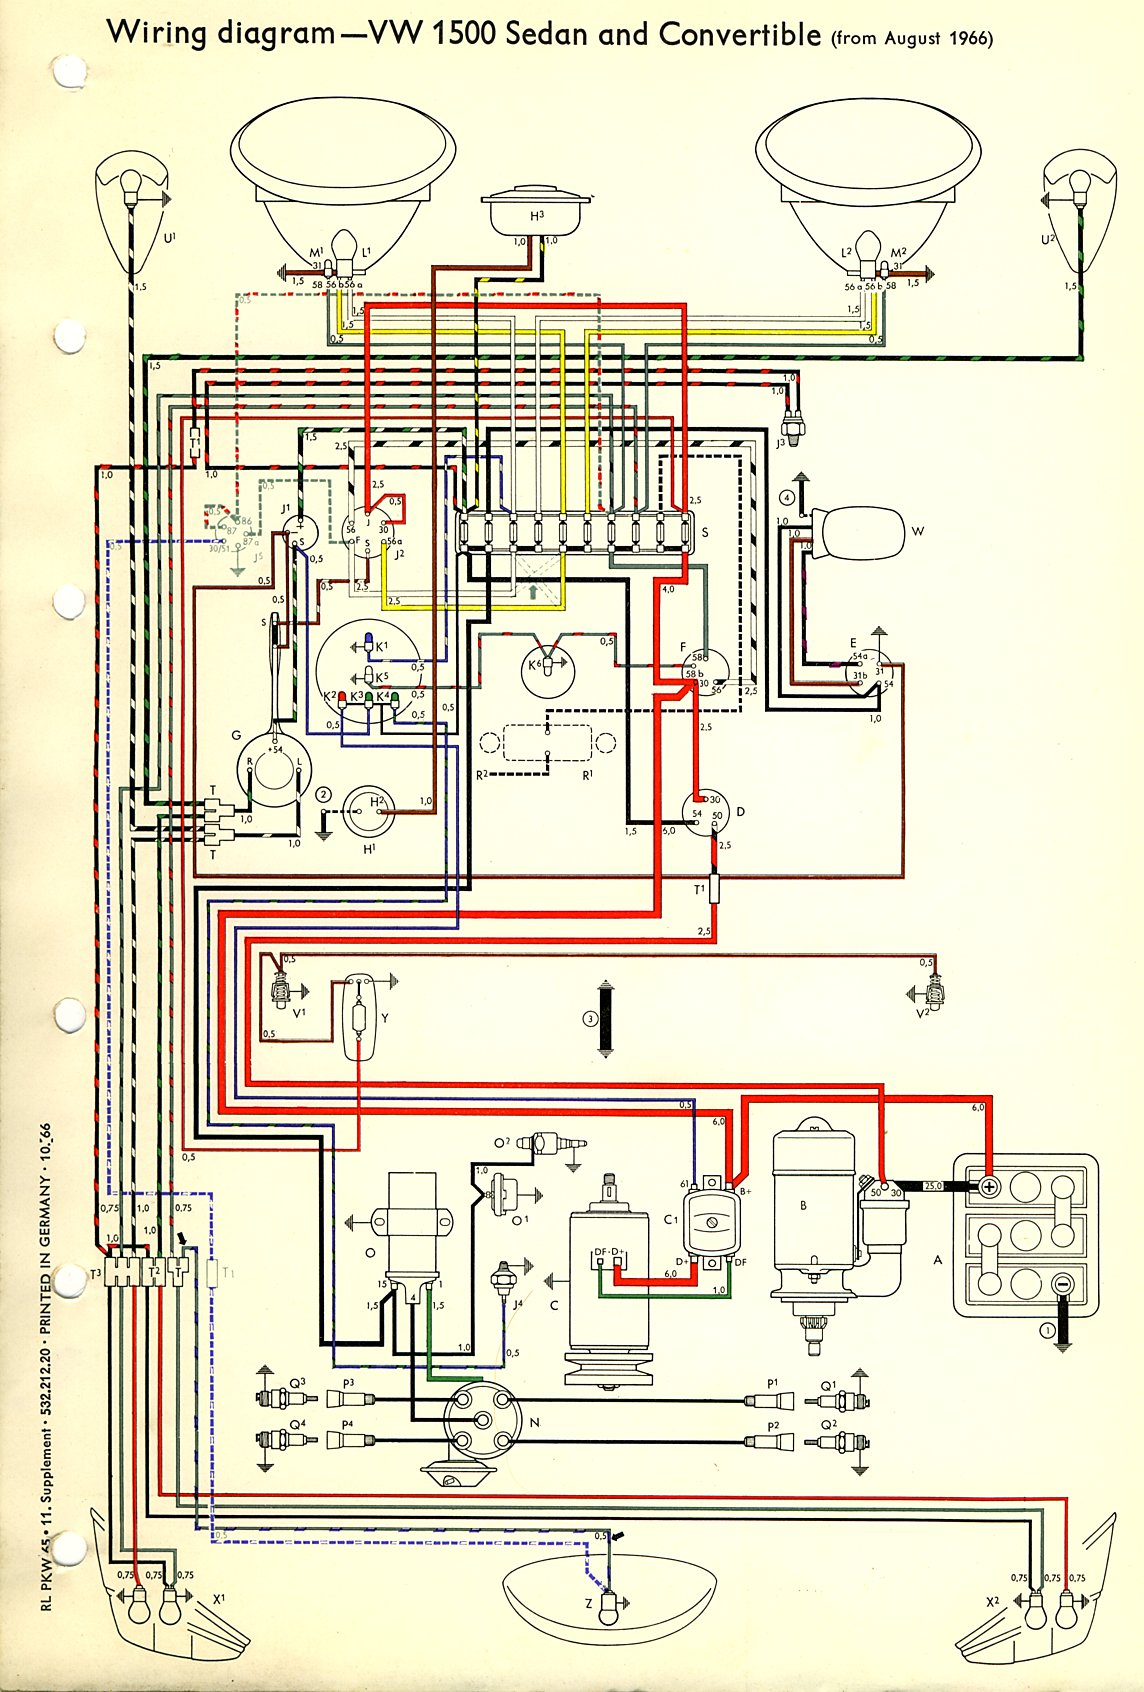 Wiring Diagram For 1975 Vw Beetle : Thesamba type wiring diagrams